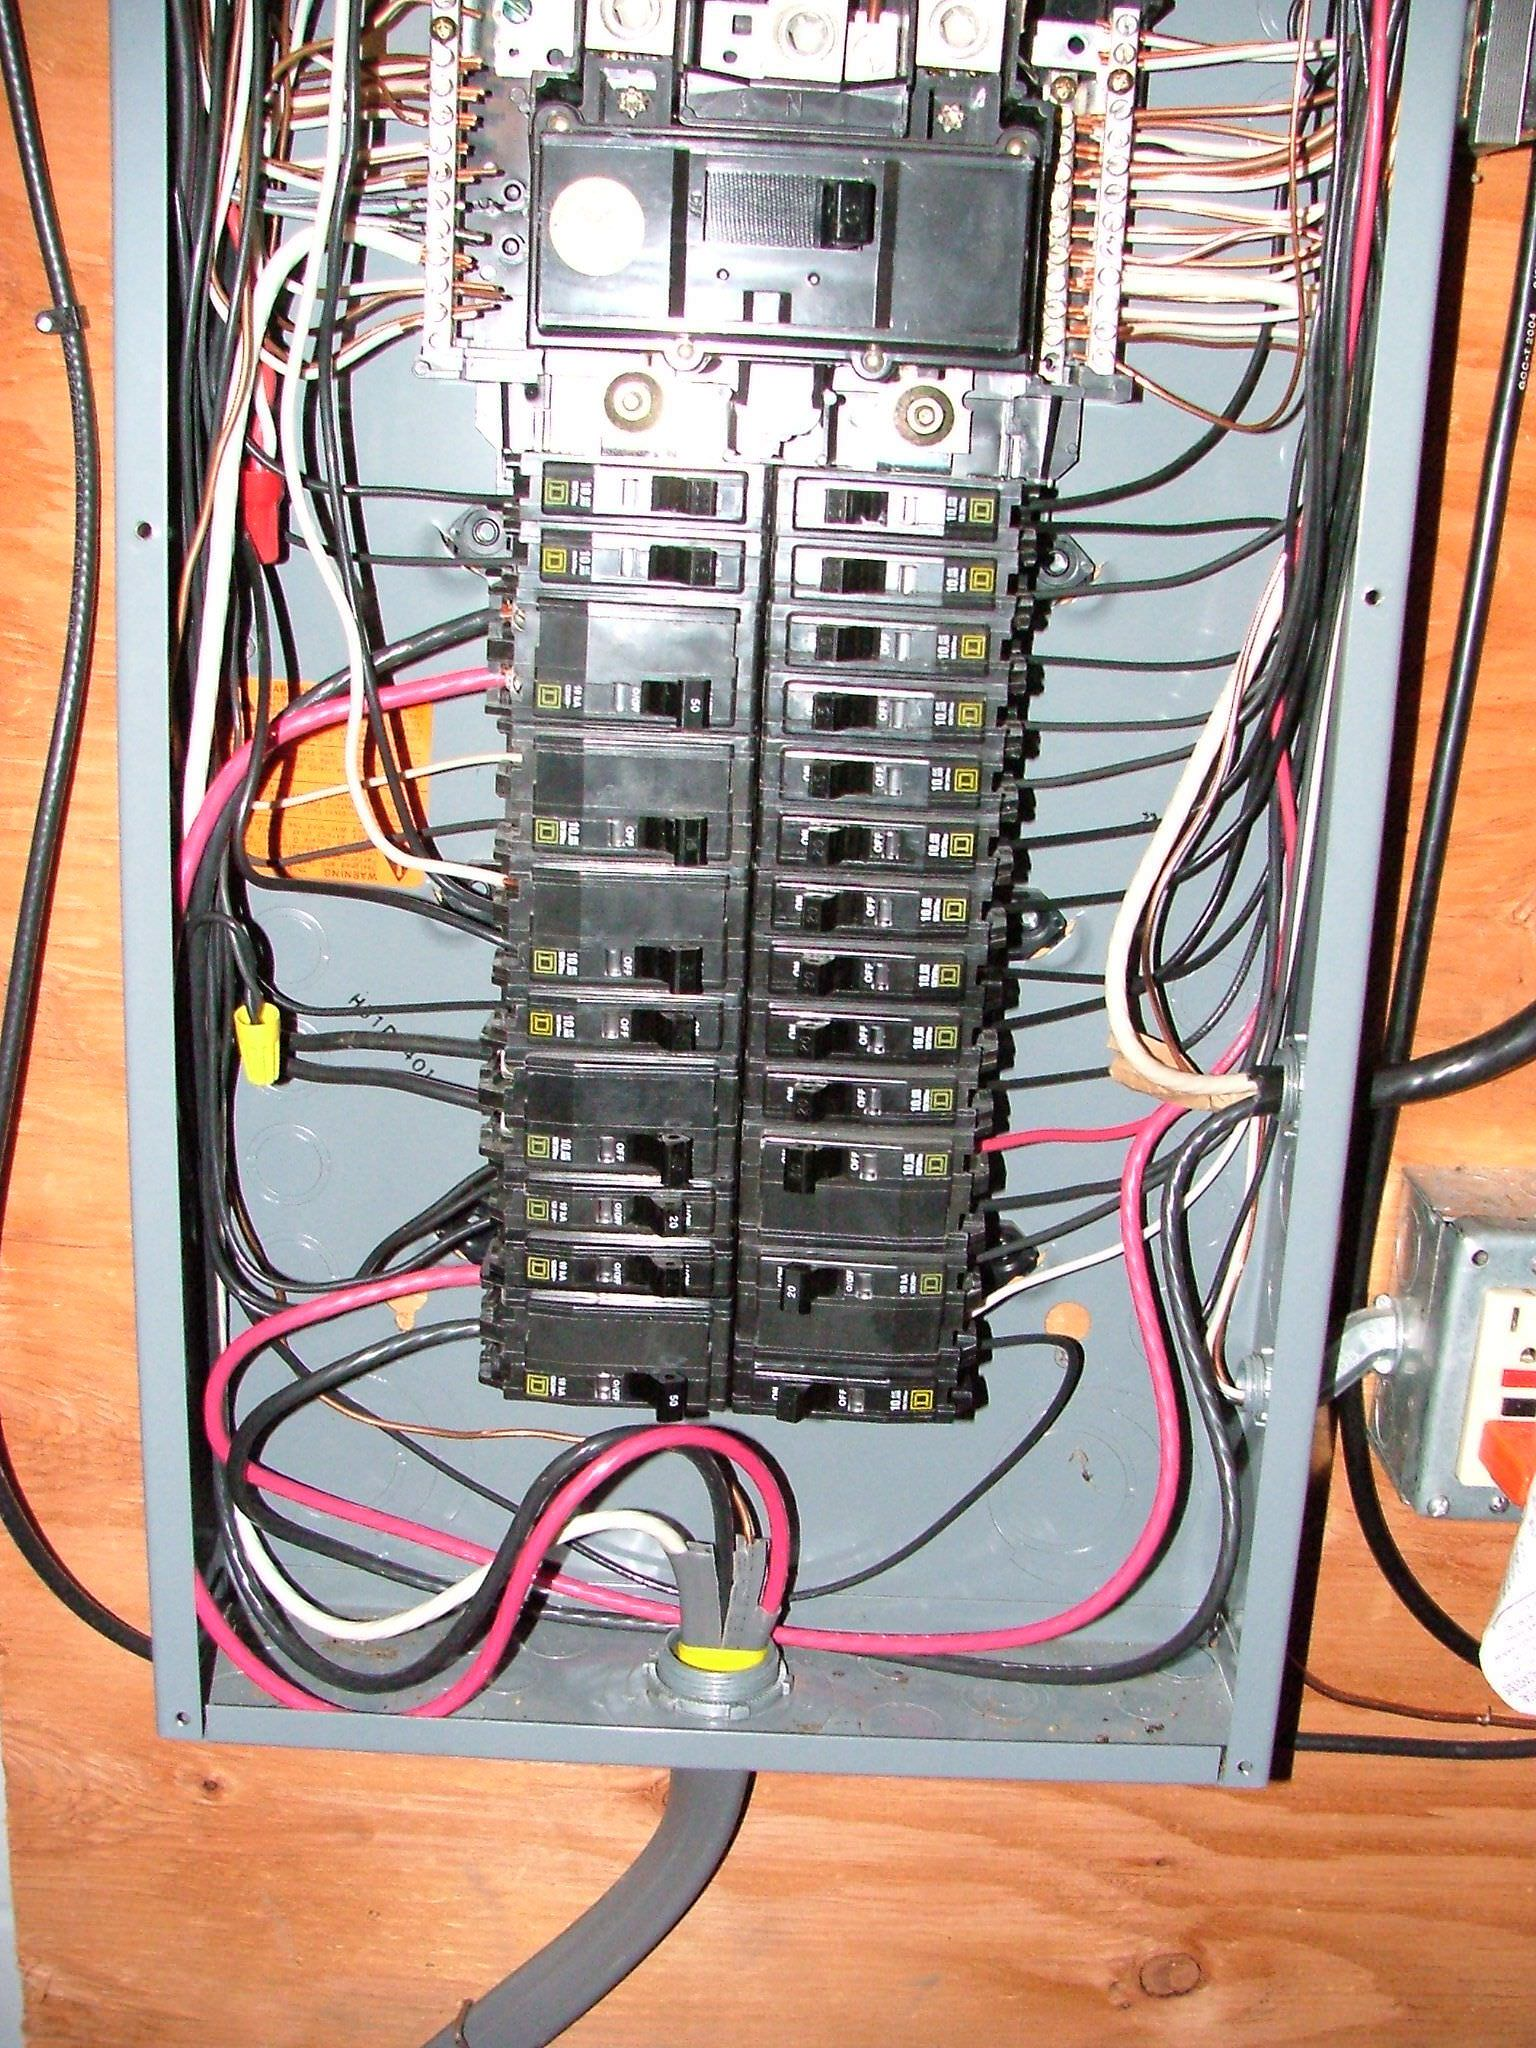 Electric Circuits Ck 12 Foundation Breaker Panel More Electrical 110 Install Doorbell Wiring Circuit